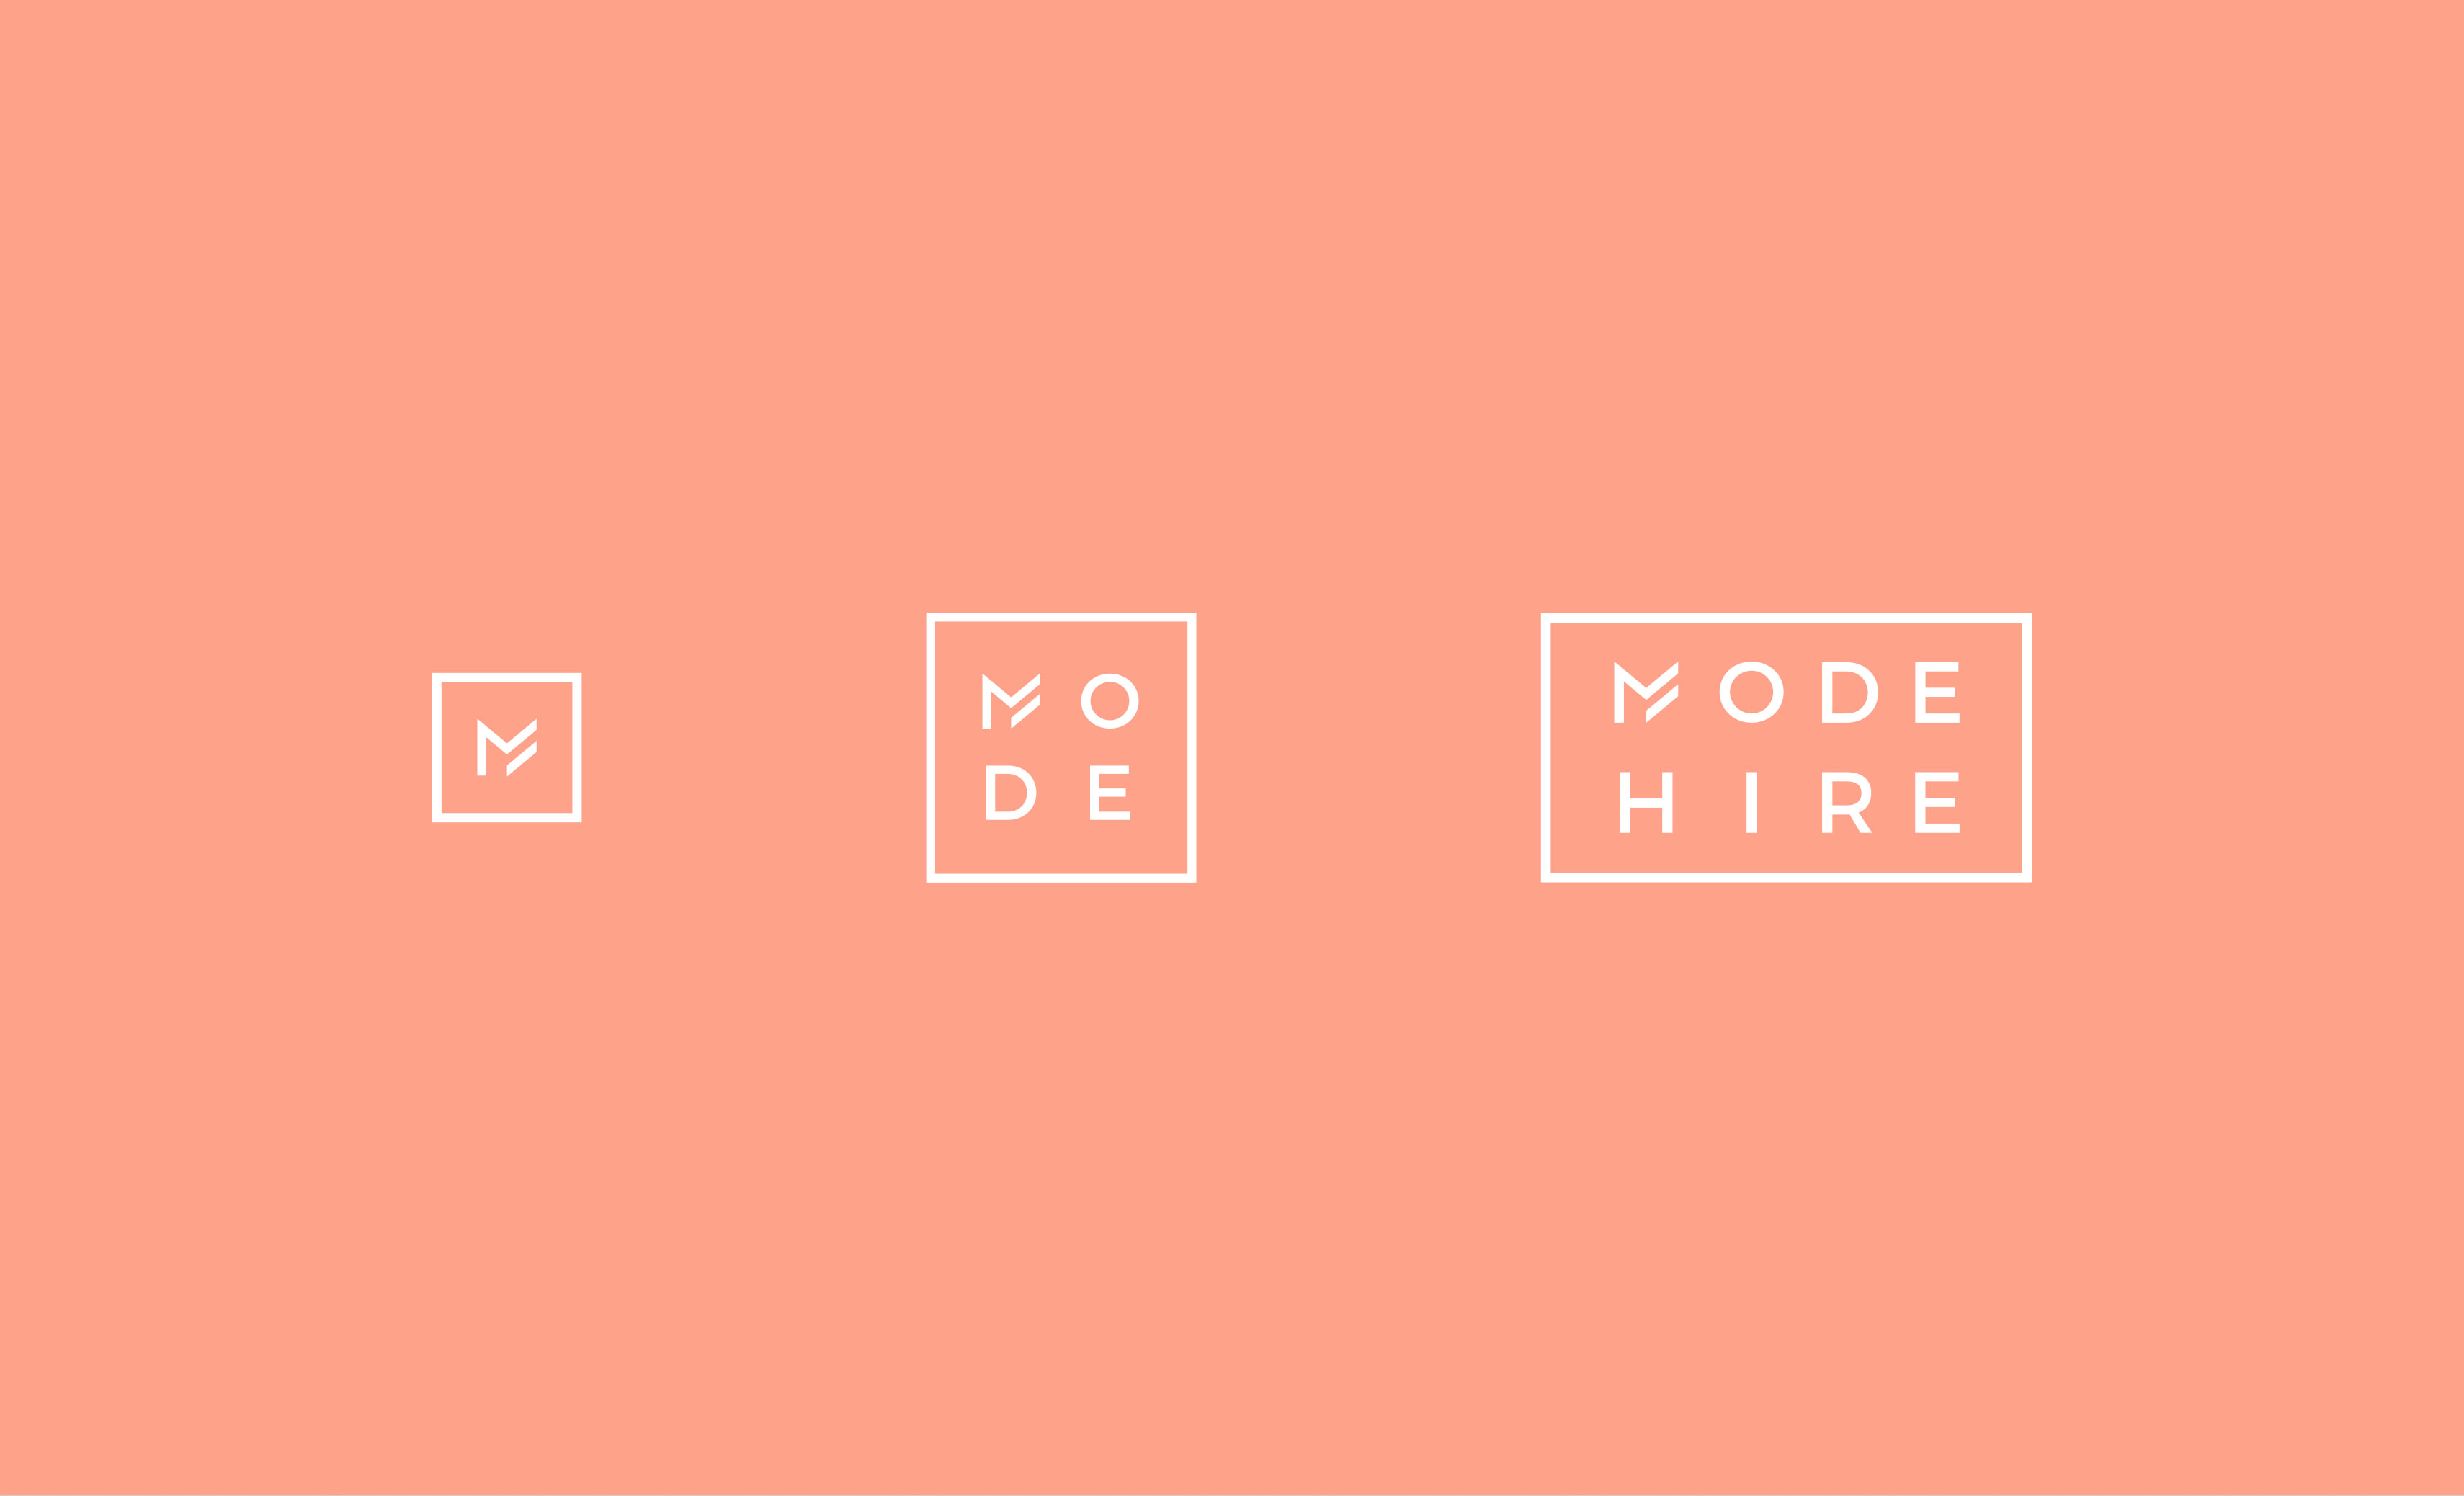 Mode Hire Logo and New Website